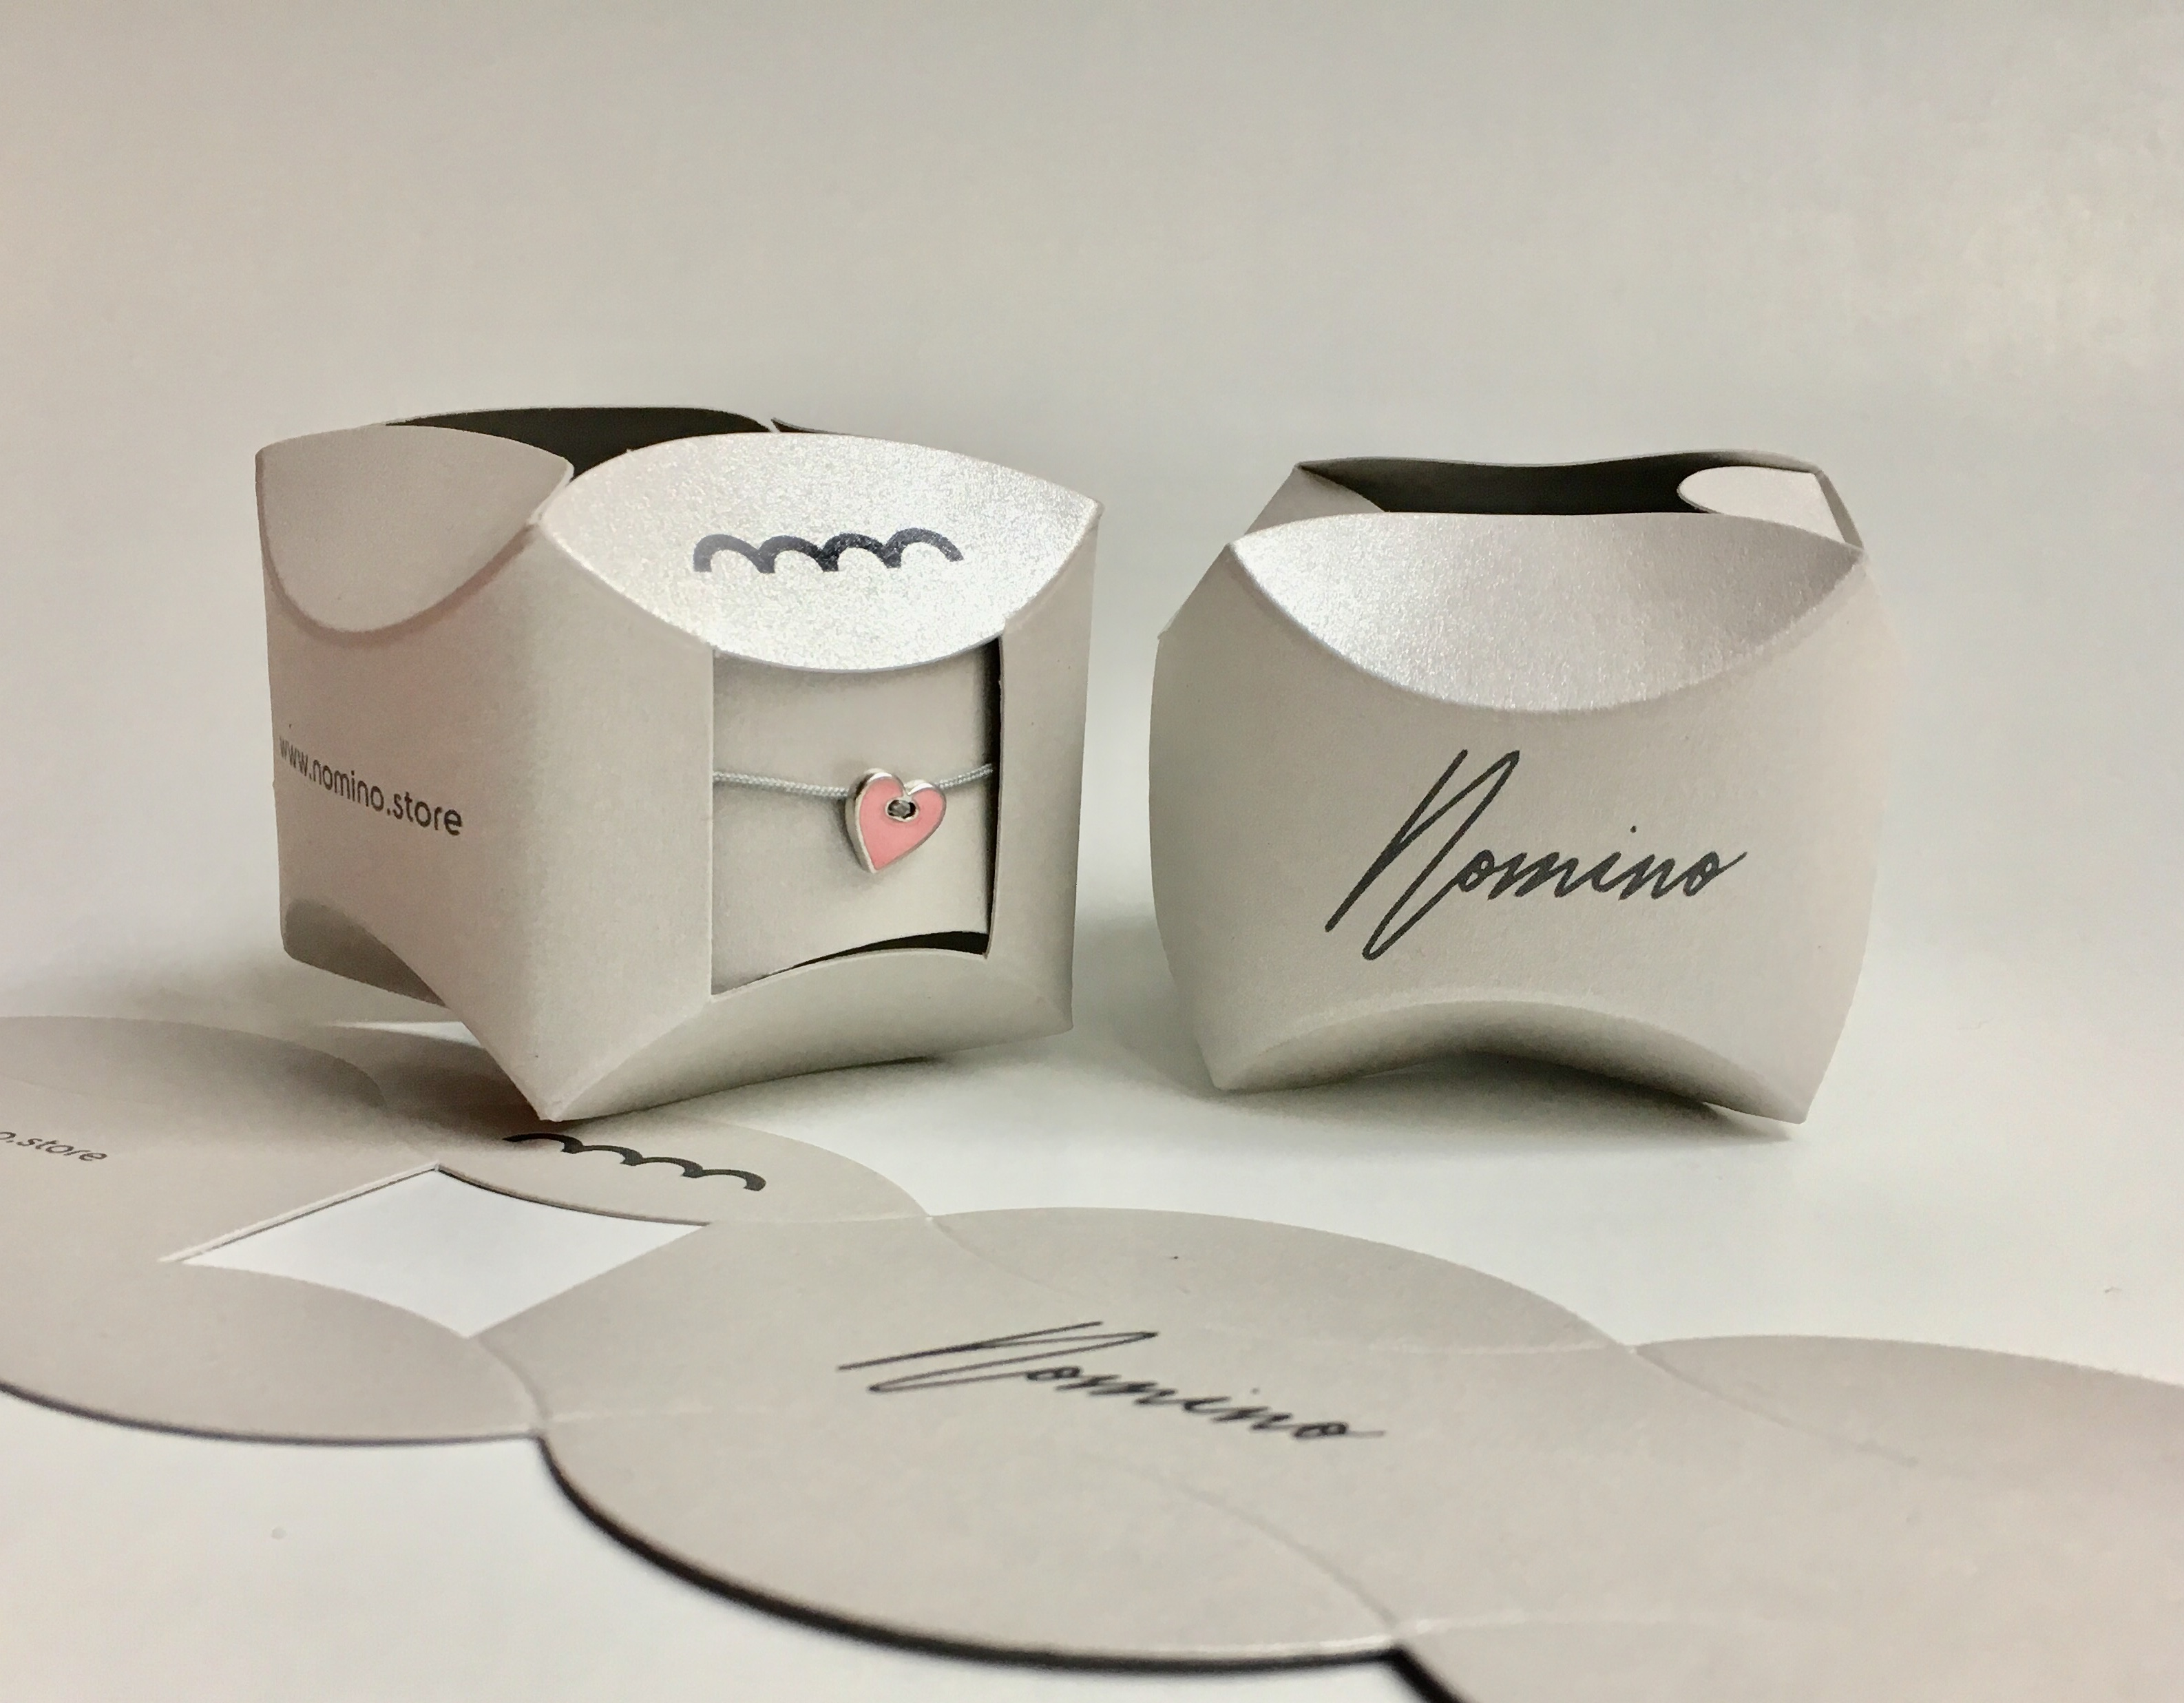 nomino packaging